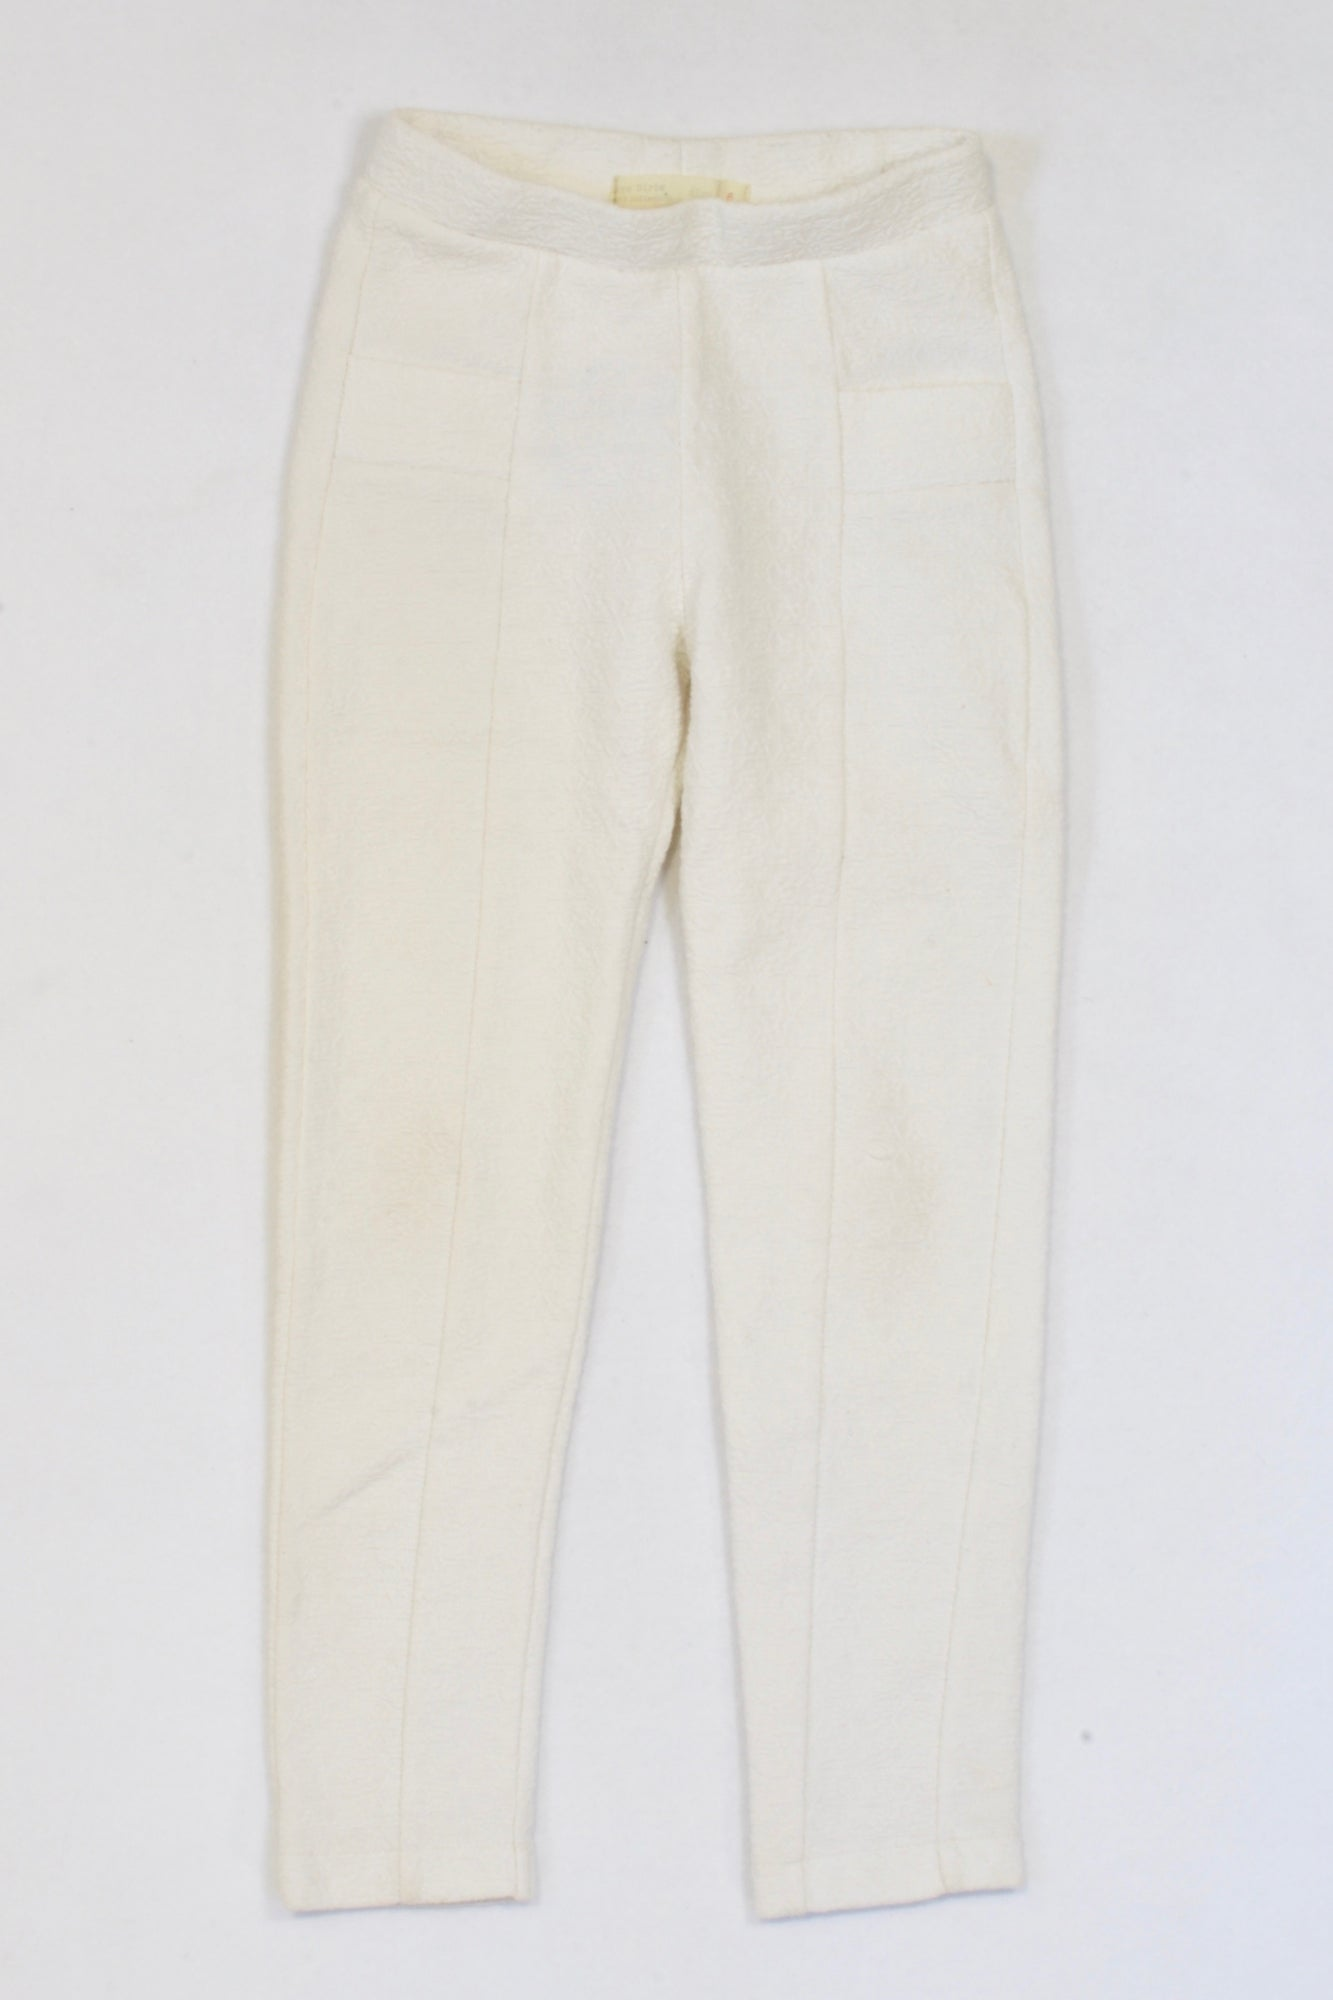 ace8dcee Zara 2 of 2 Off White Textured Jeggings Girls 5-6 years – Once More